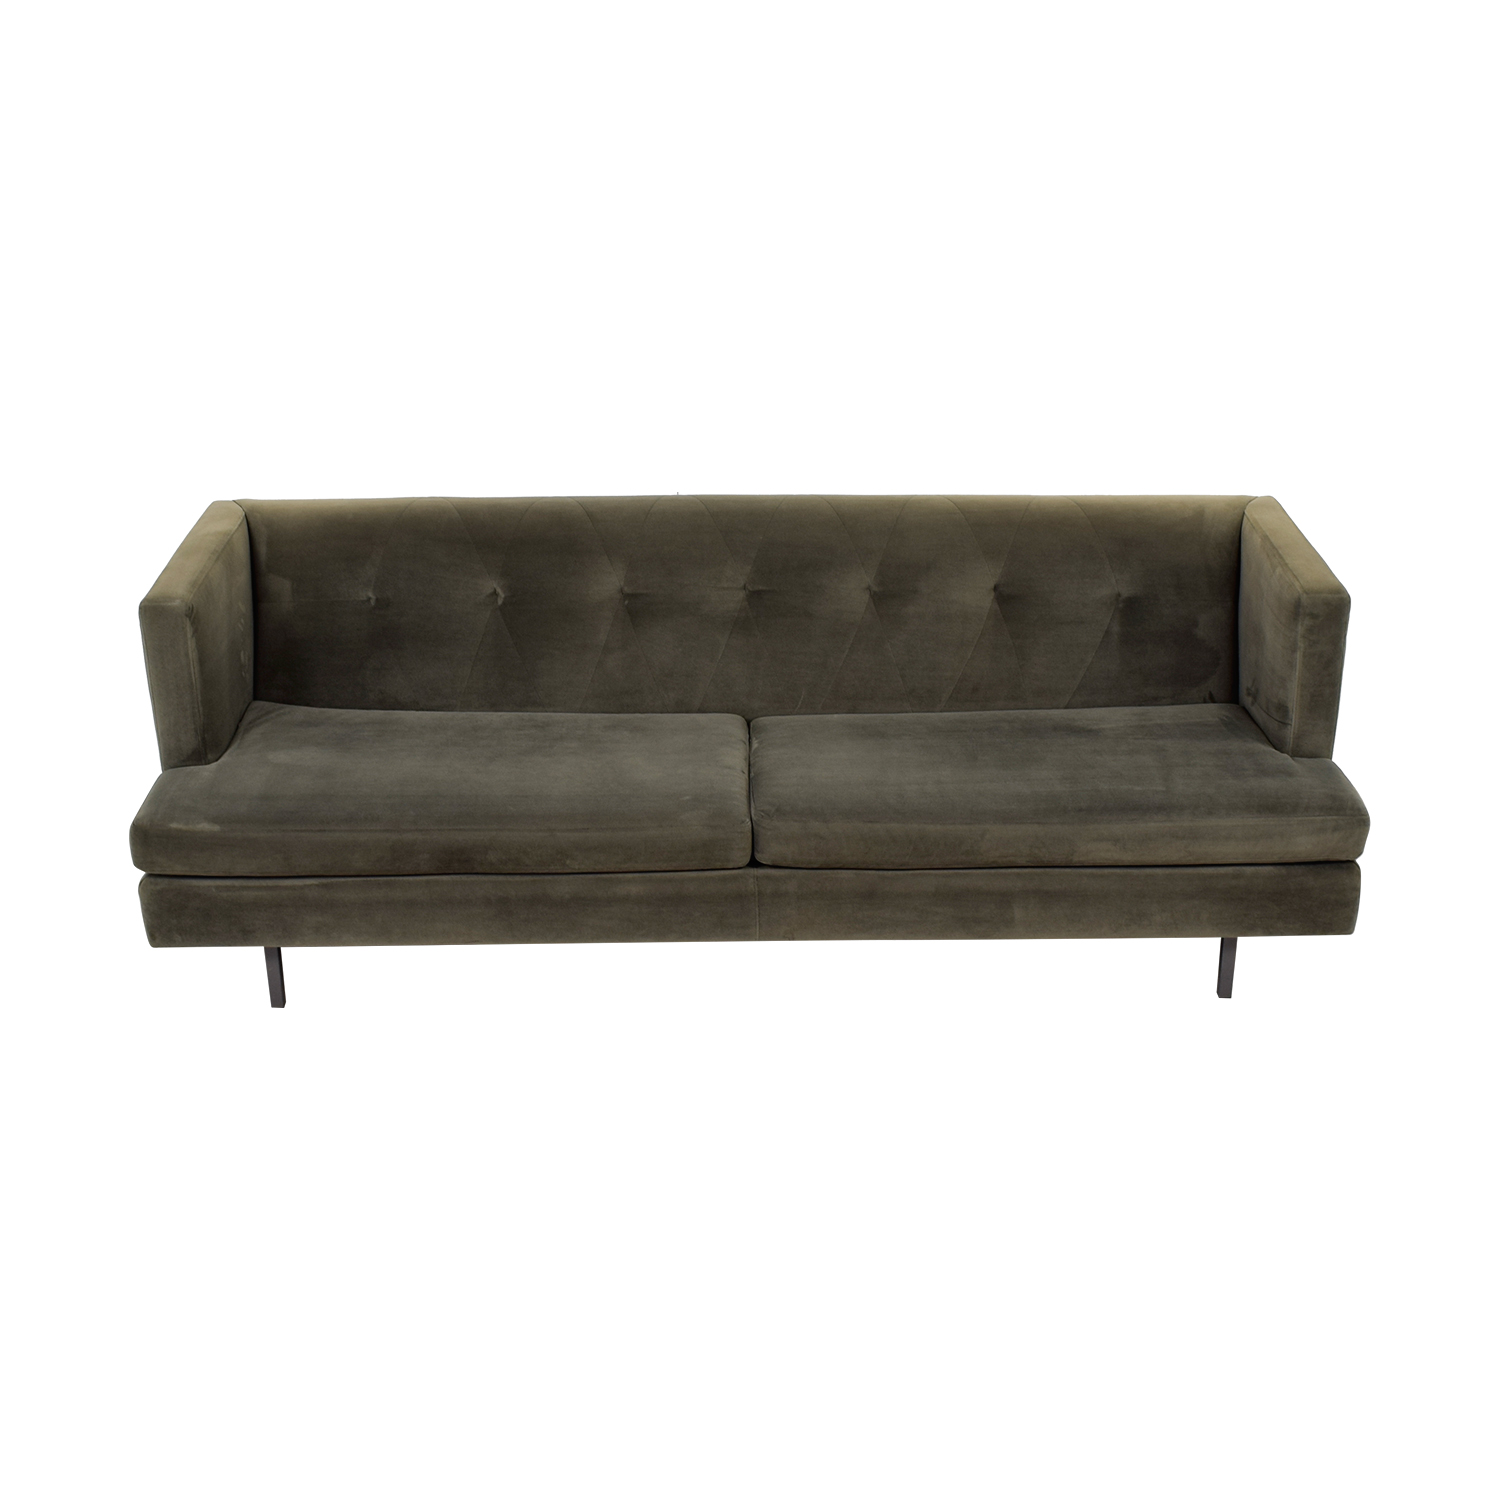 Peachy 64 Off Cb2 Cb2 Avec Grey Velvet Sofa Sofas Pabps2019 Chair Design Images Pabps2019Com